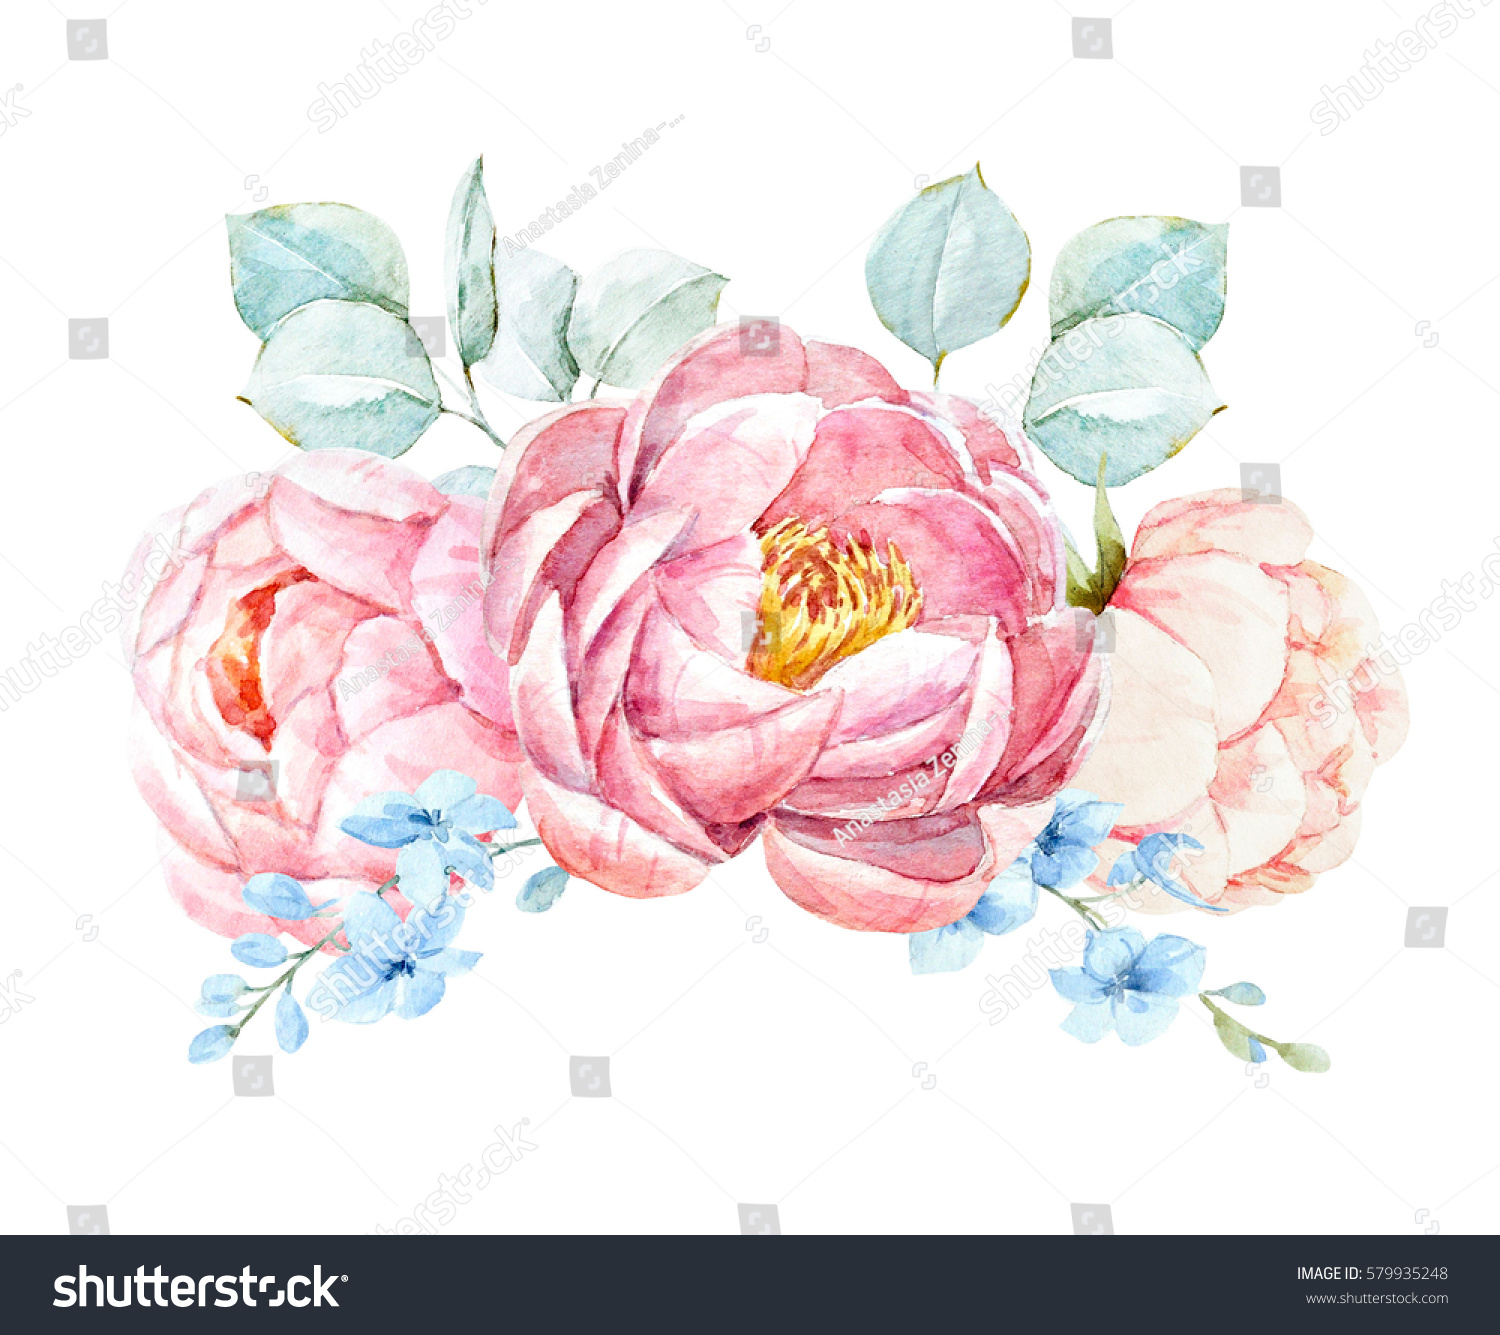 Watercolor Floral Bouquet Pink Peony Flowers Stock Illustration 579935248